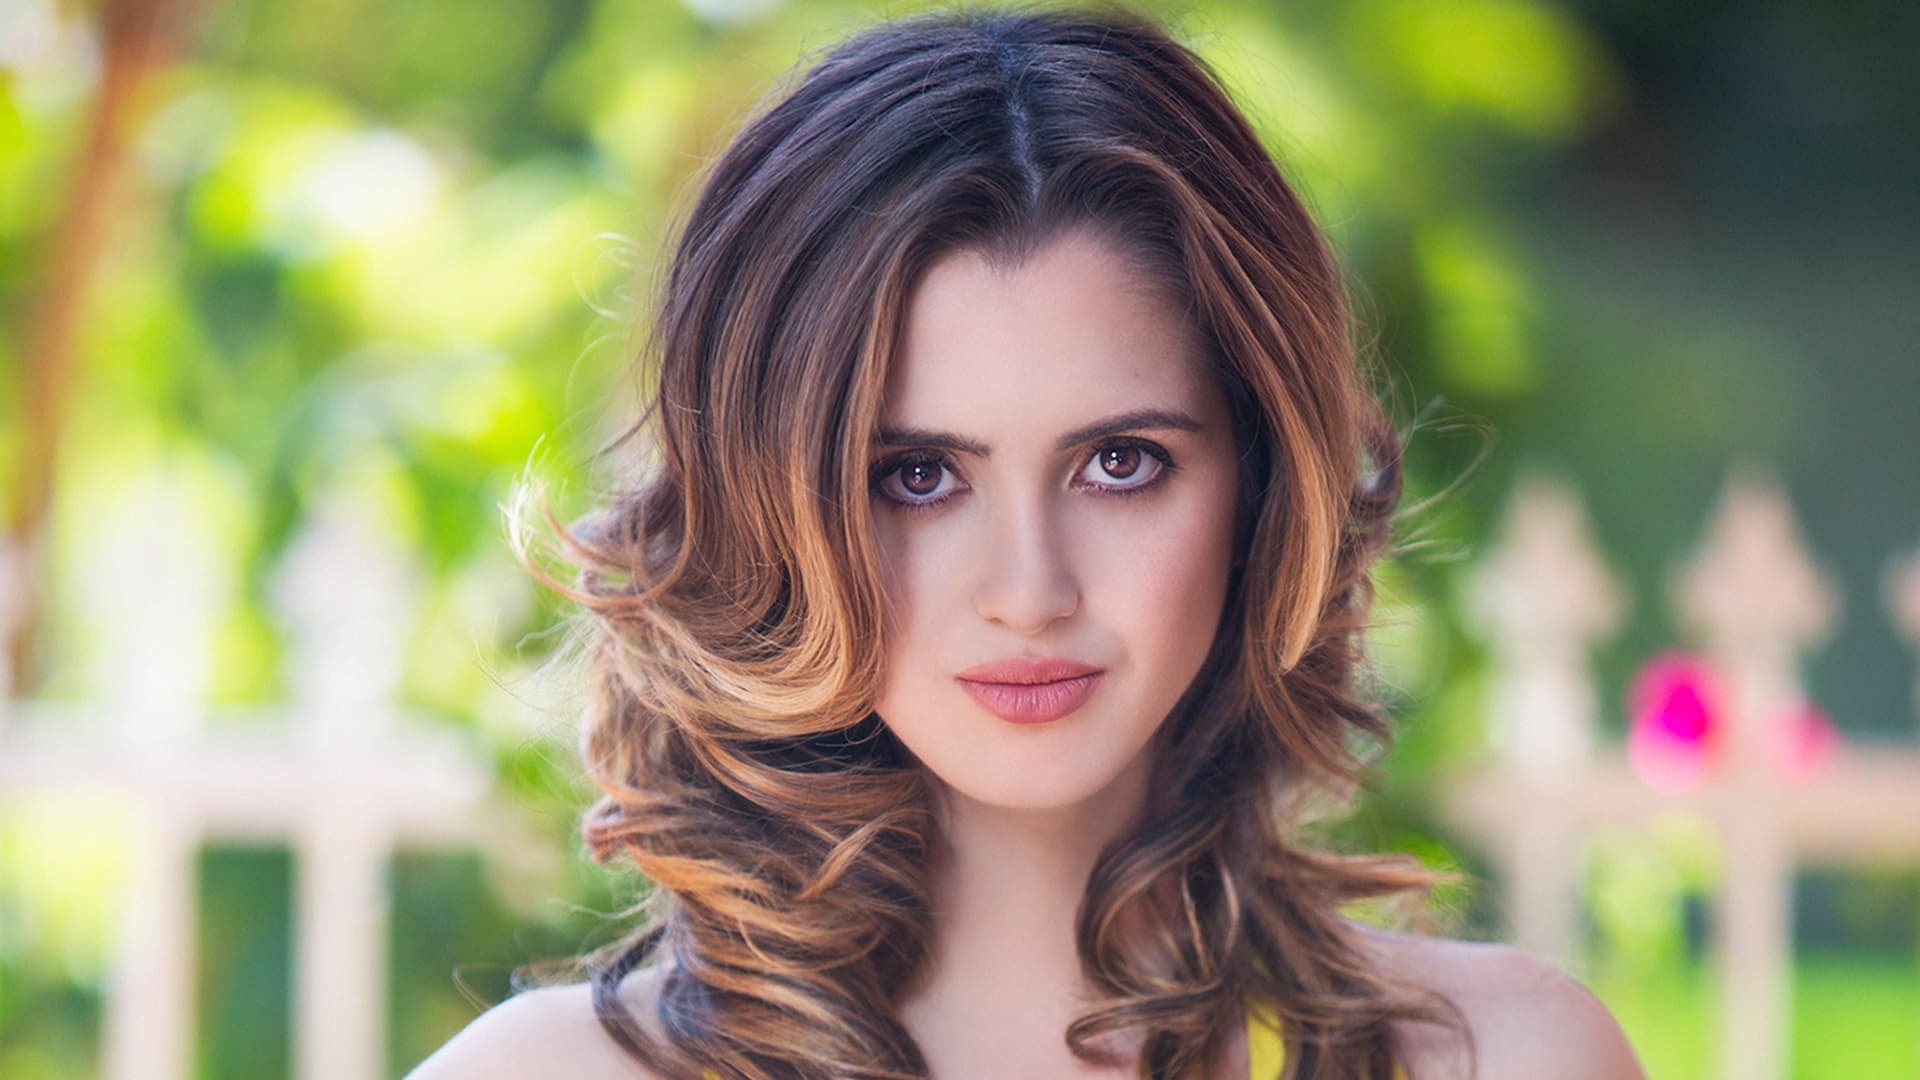 Laura Marano wallpapers HD High Quality Resolution Download